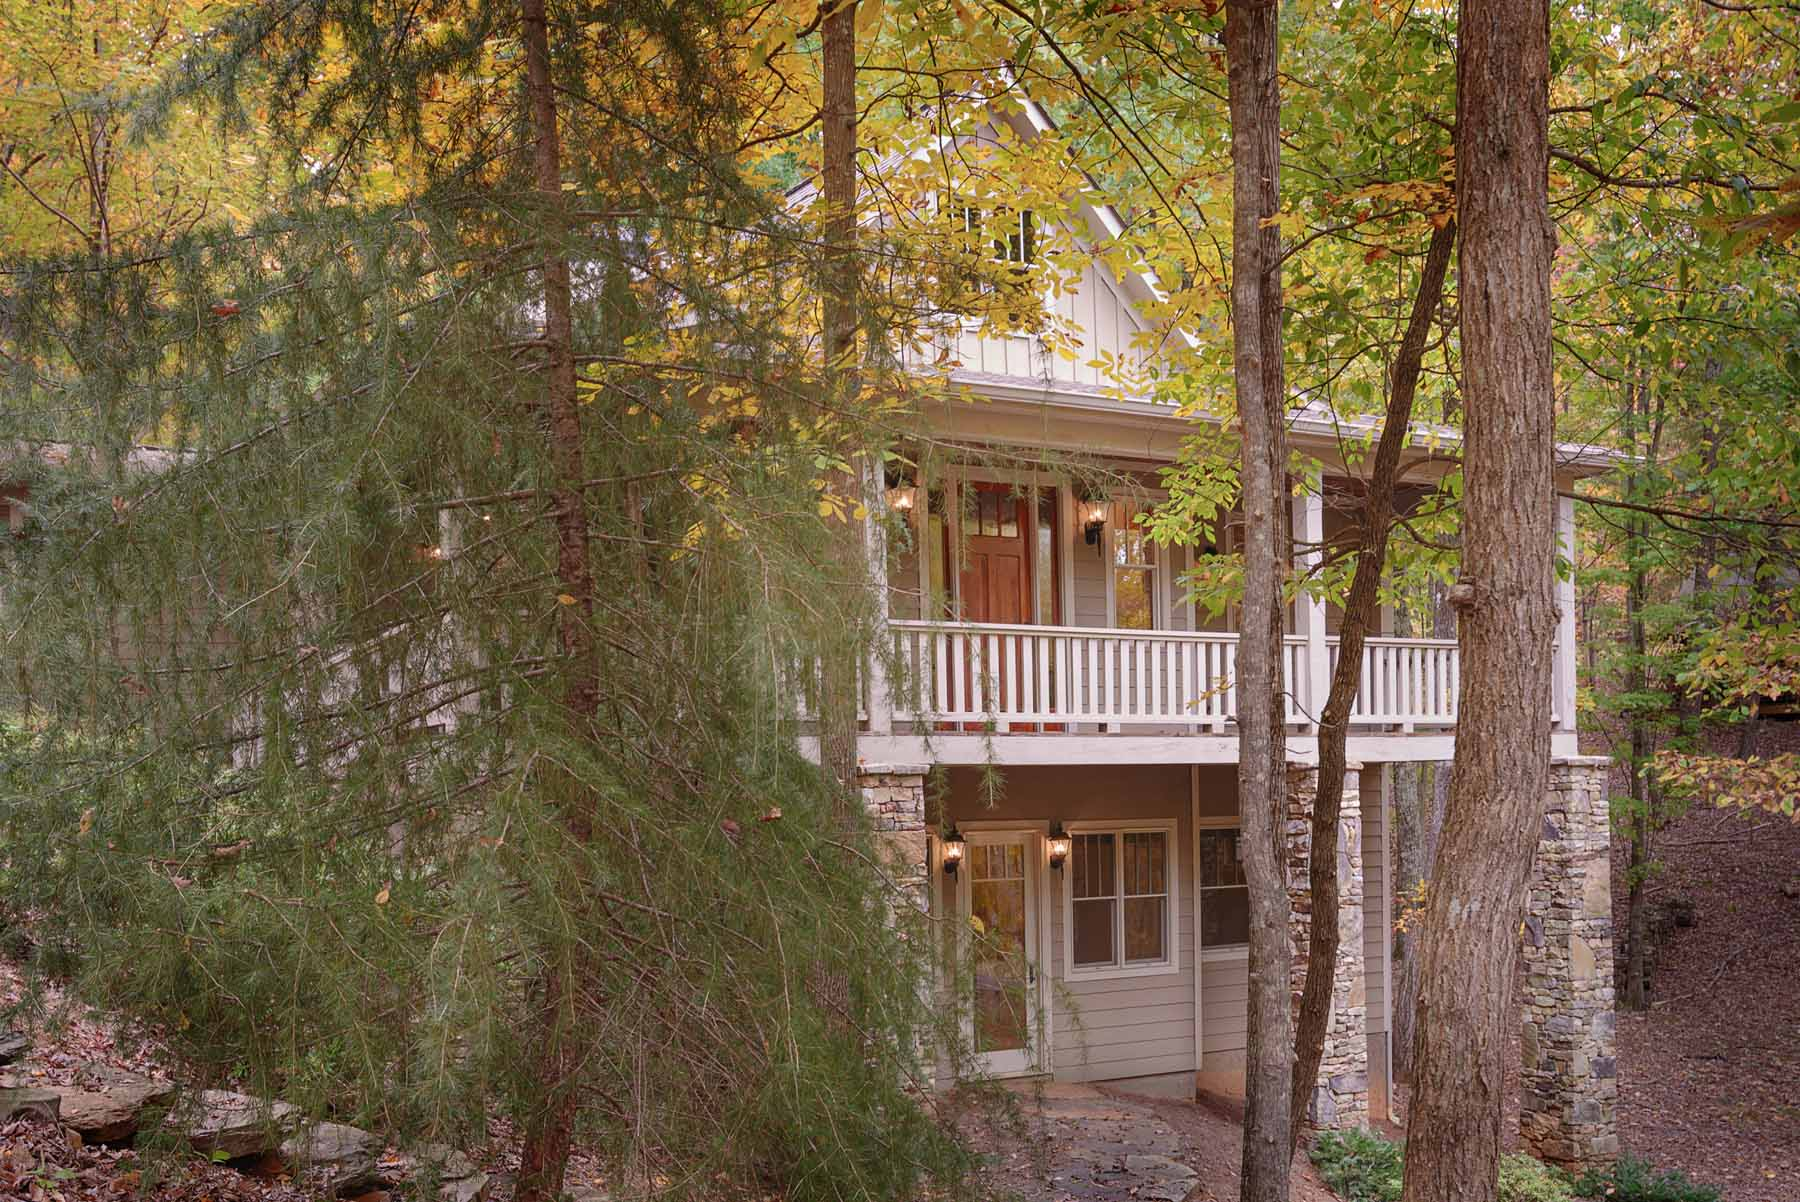 Maison unifamiliale pour l Vente à Bungalow that Backs Up to Green Space 83 Owls Brow Big Canoe, Georgia, 30143 États-Unis